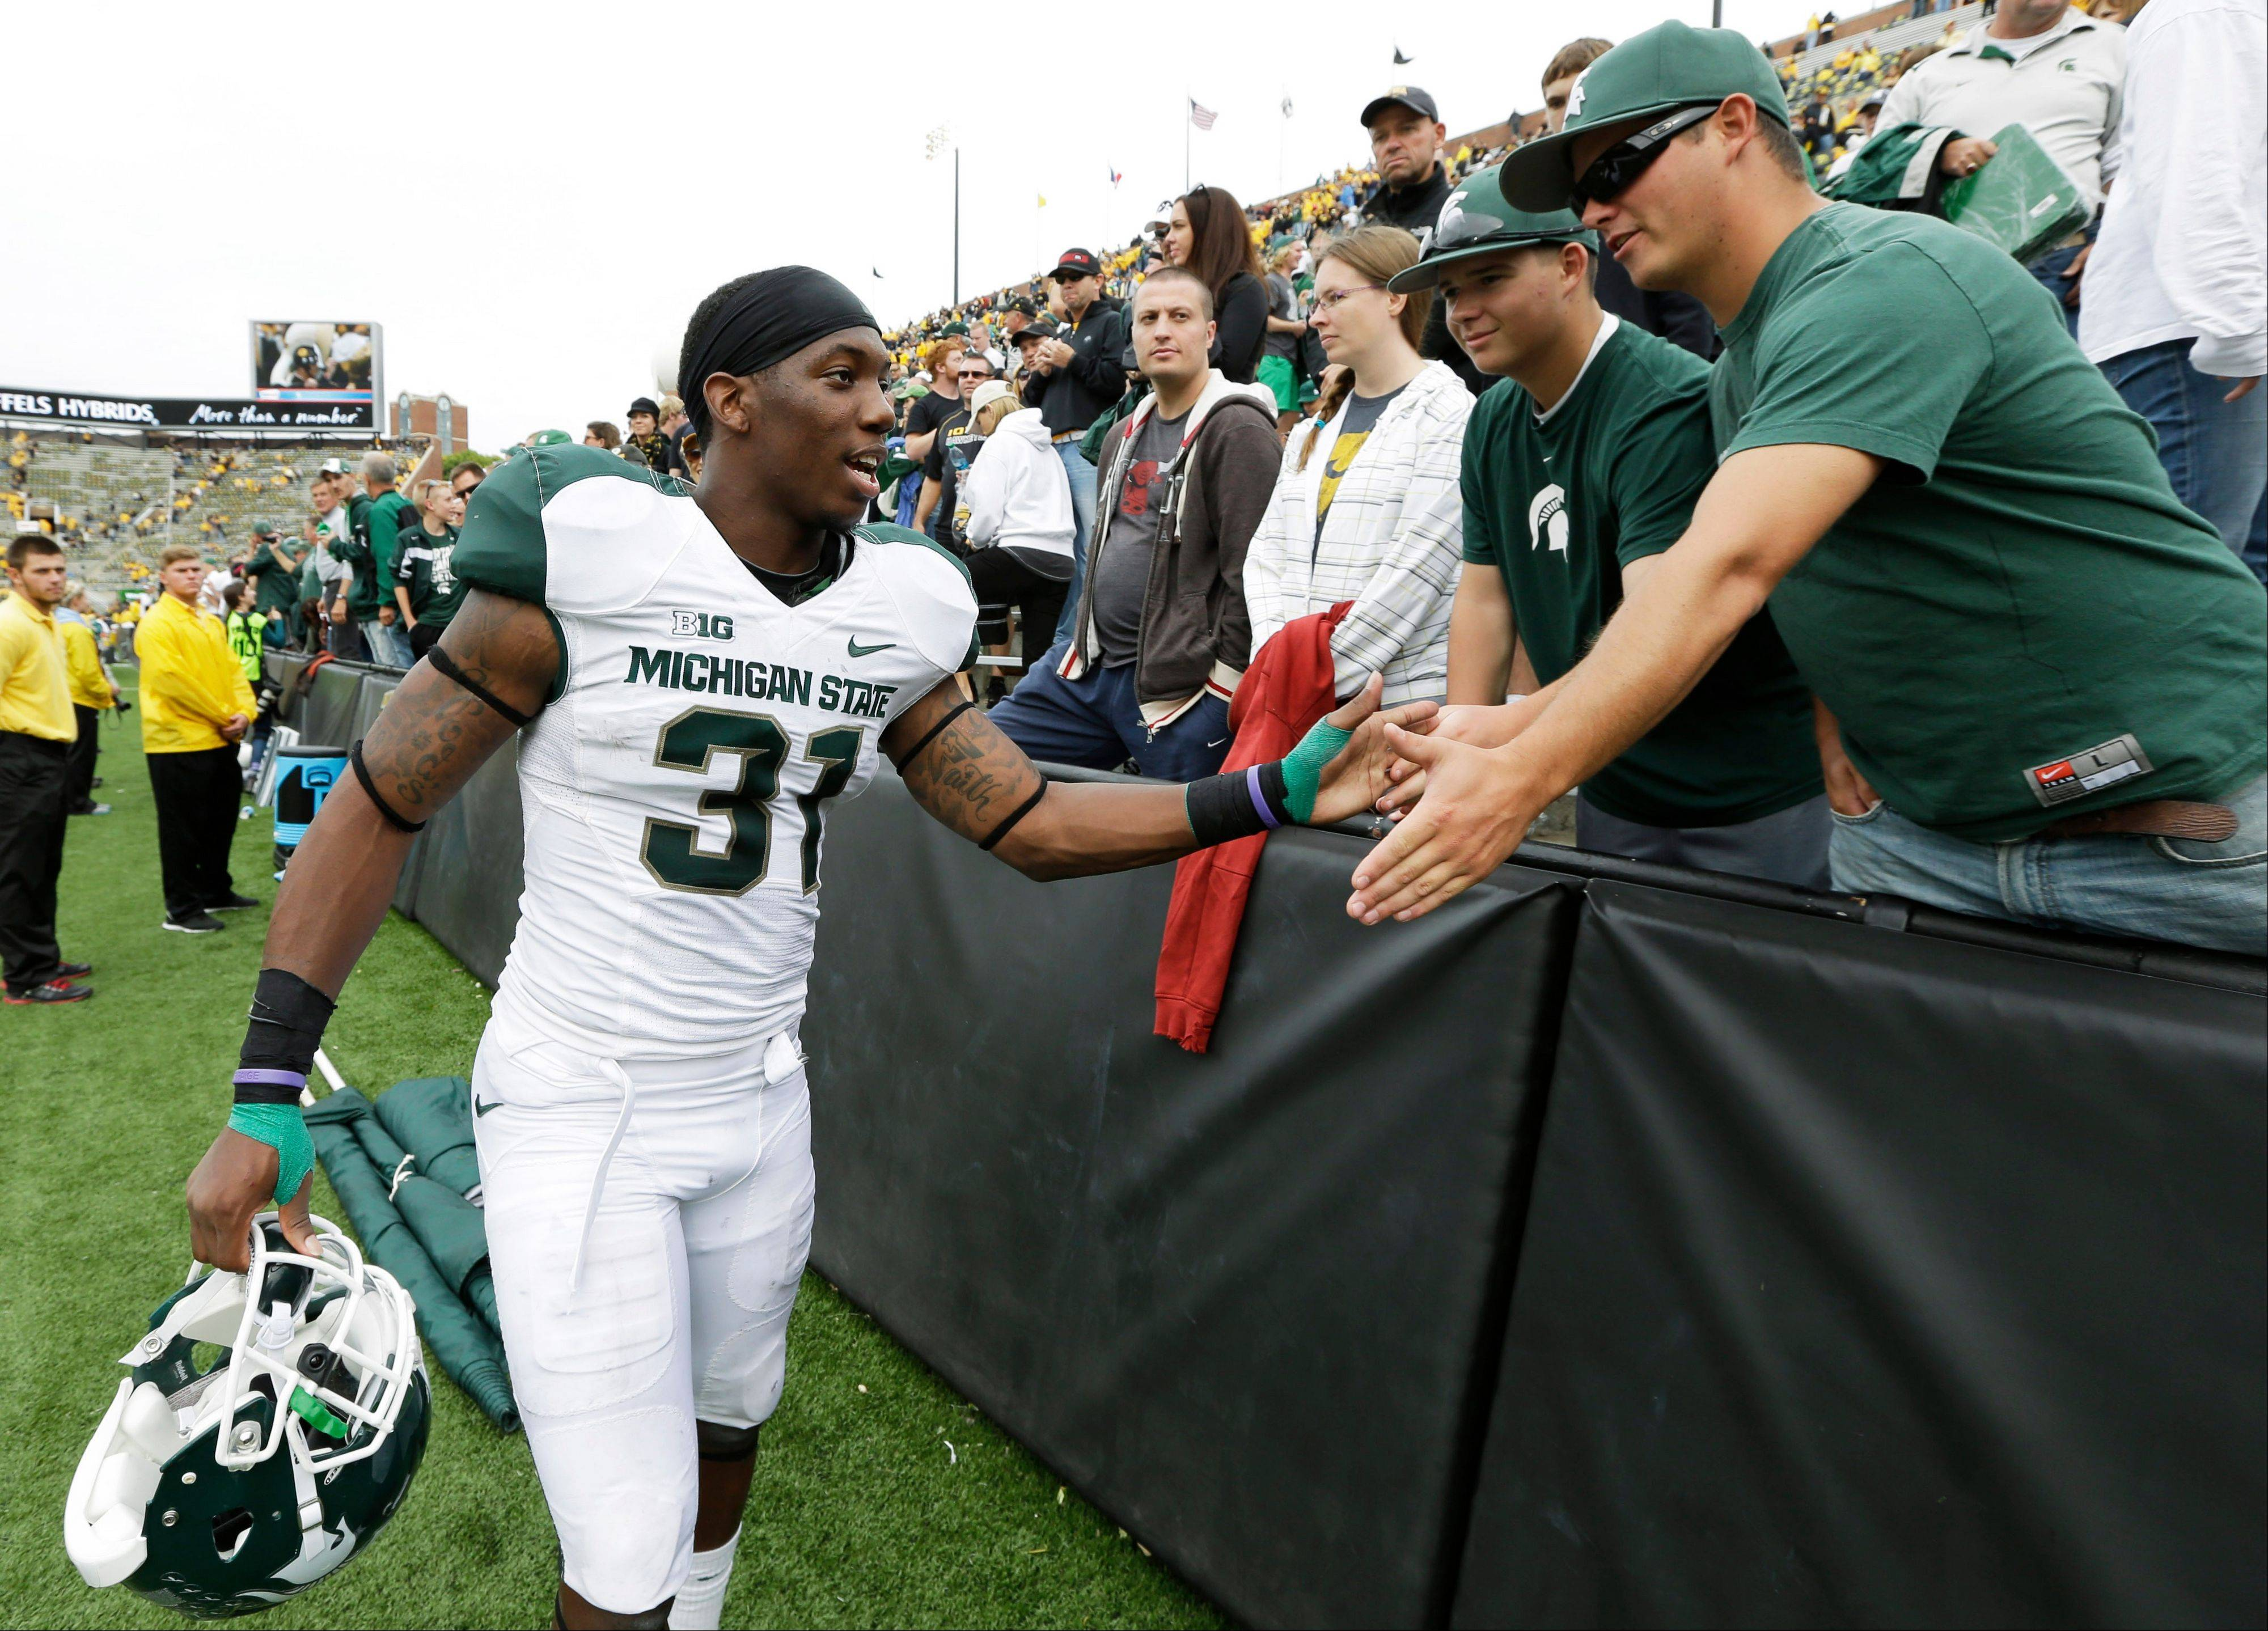 Michigan State cornerback Darqueze Dennard celebrates with fans after Saturday's road win against Iowa.